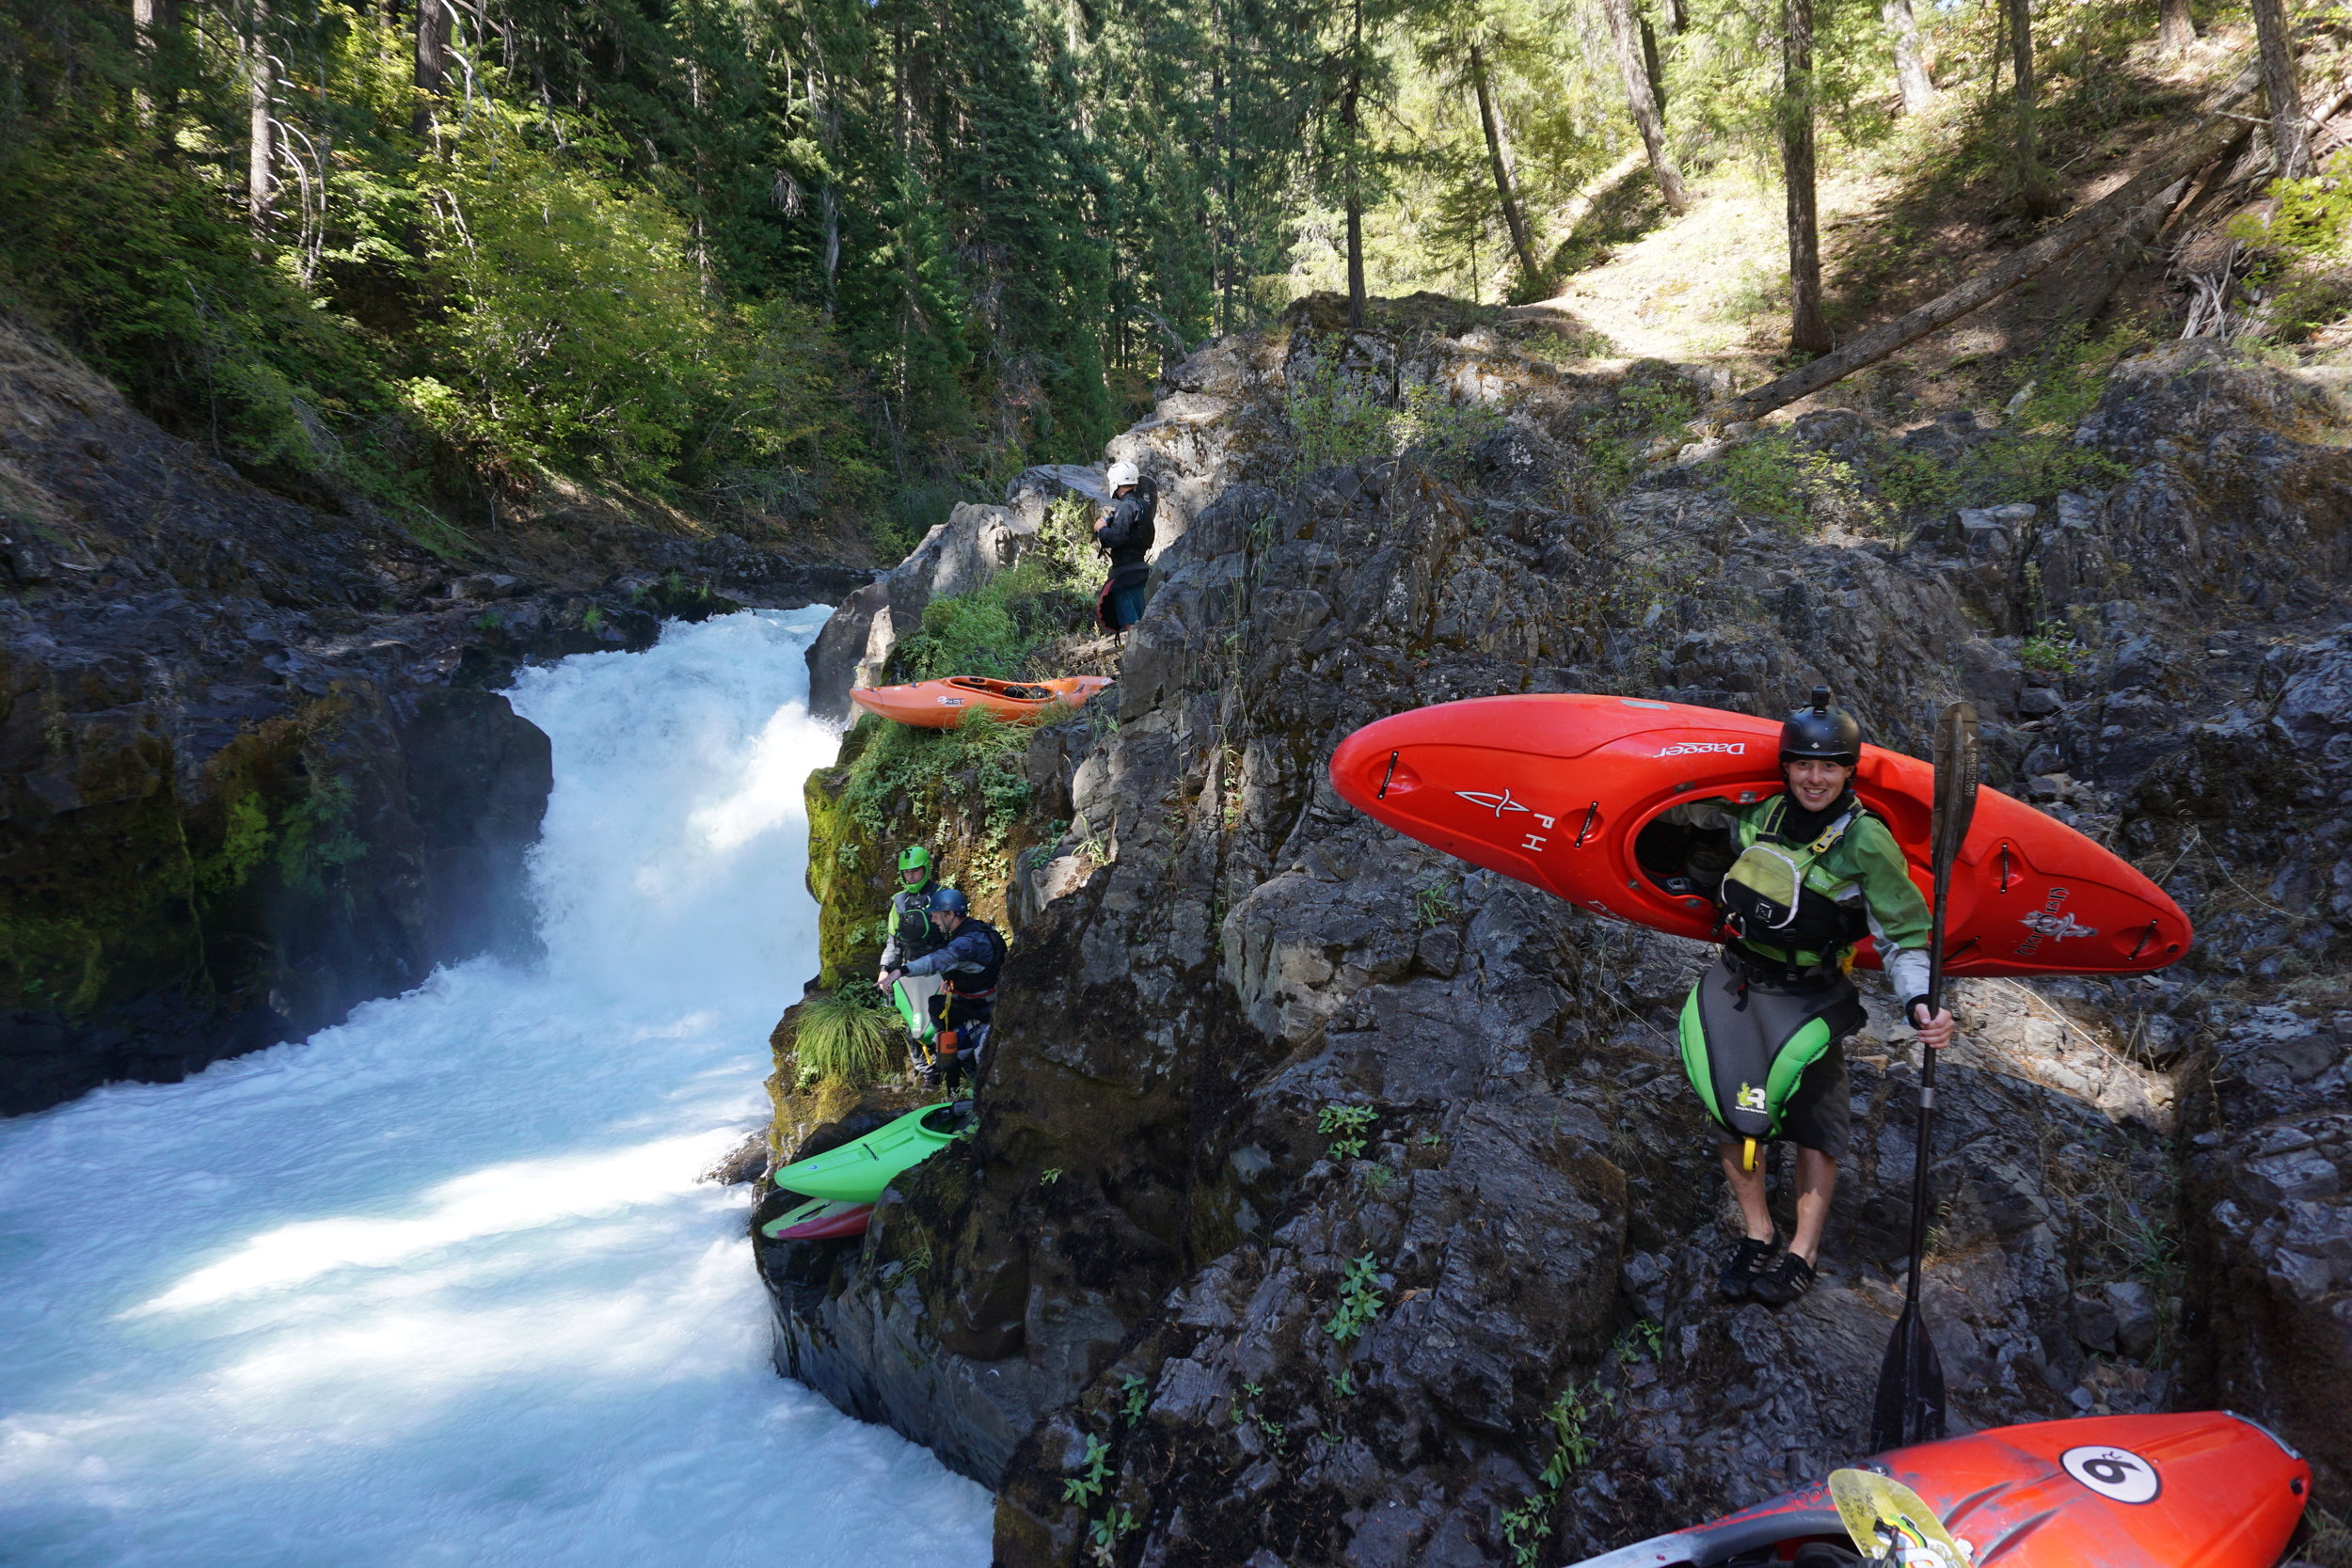 Portaging a hazardous drop at Therapy Falls Nature Bridge Section of the Rogue River Oregon. Photo courtesy of Adam Edwards.